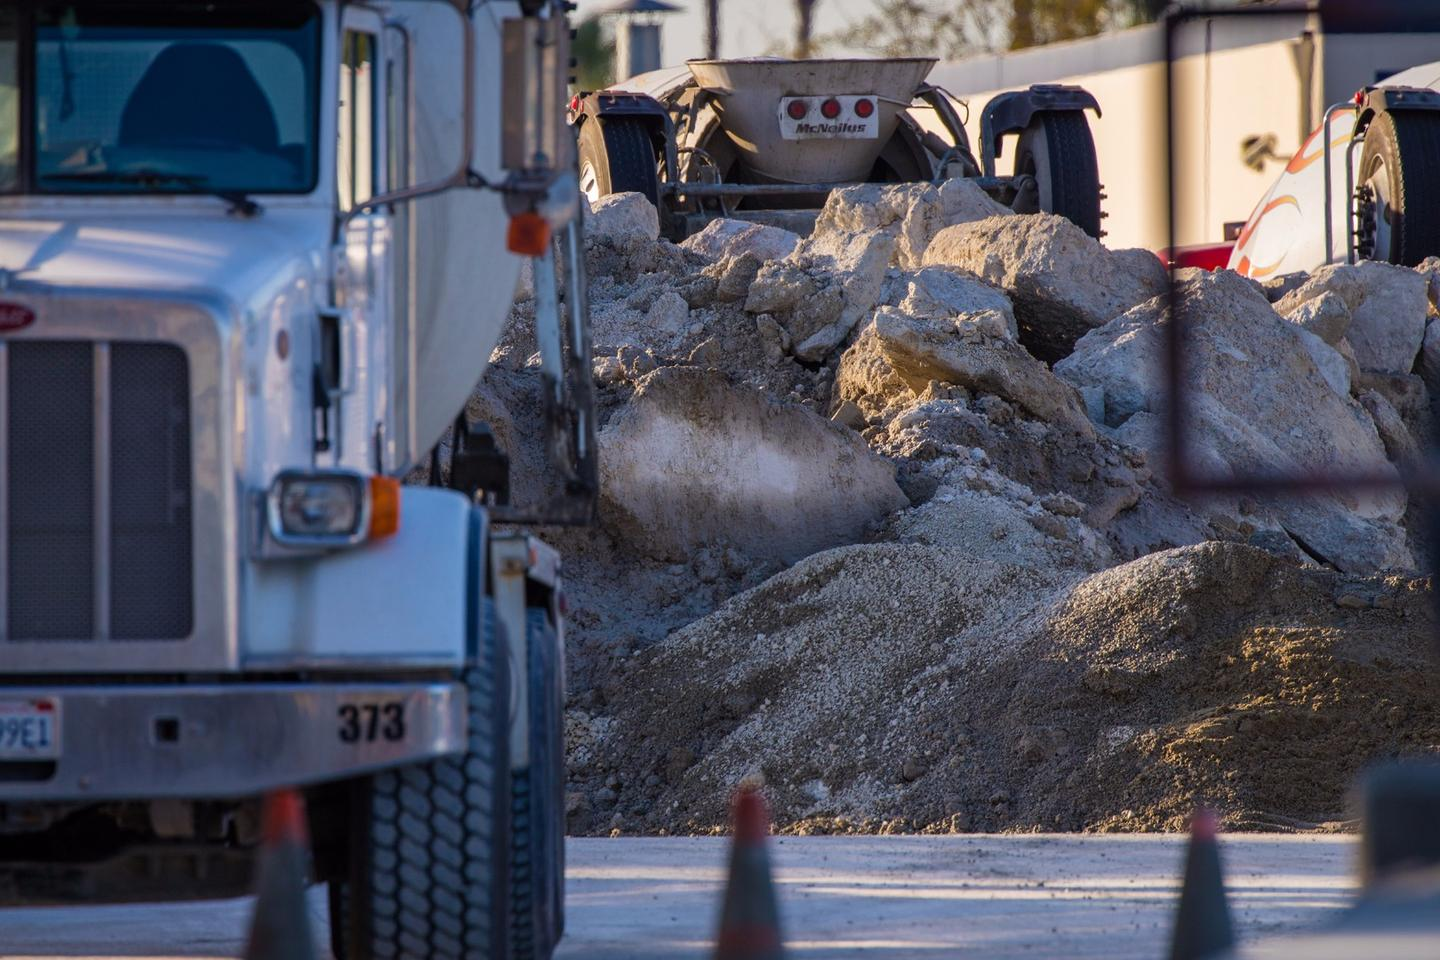 Believe it or not,the concrete rubble you see on the road is actually helping to clean up the air